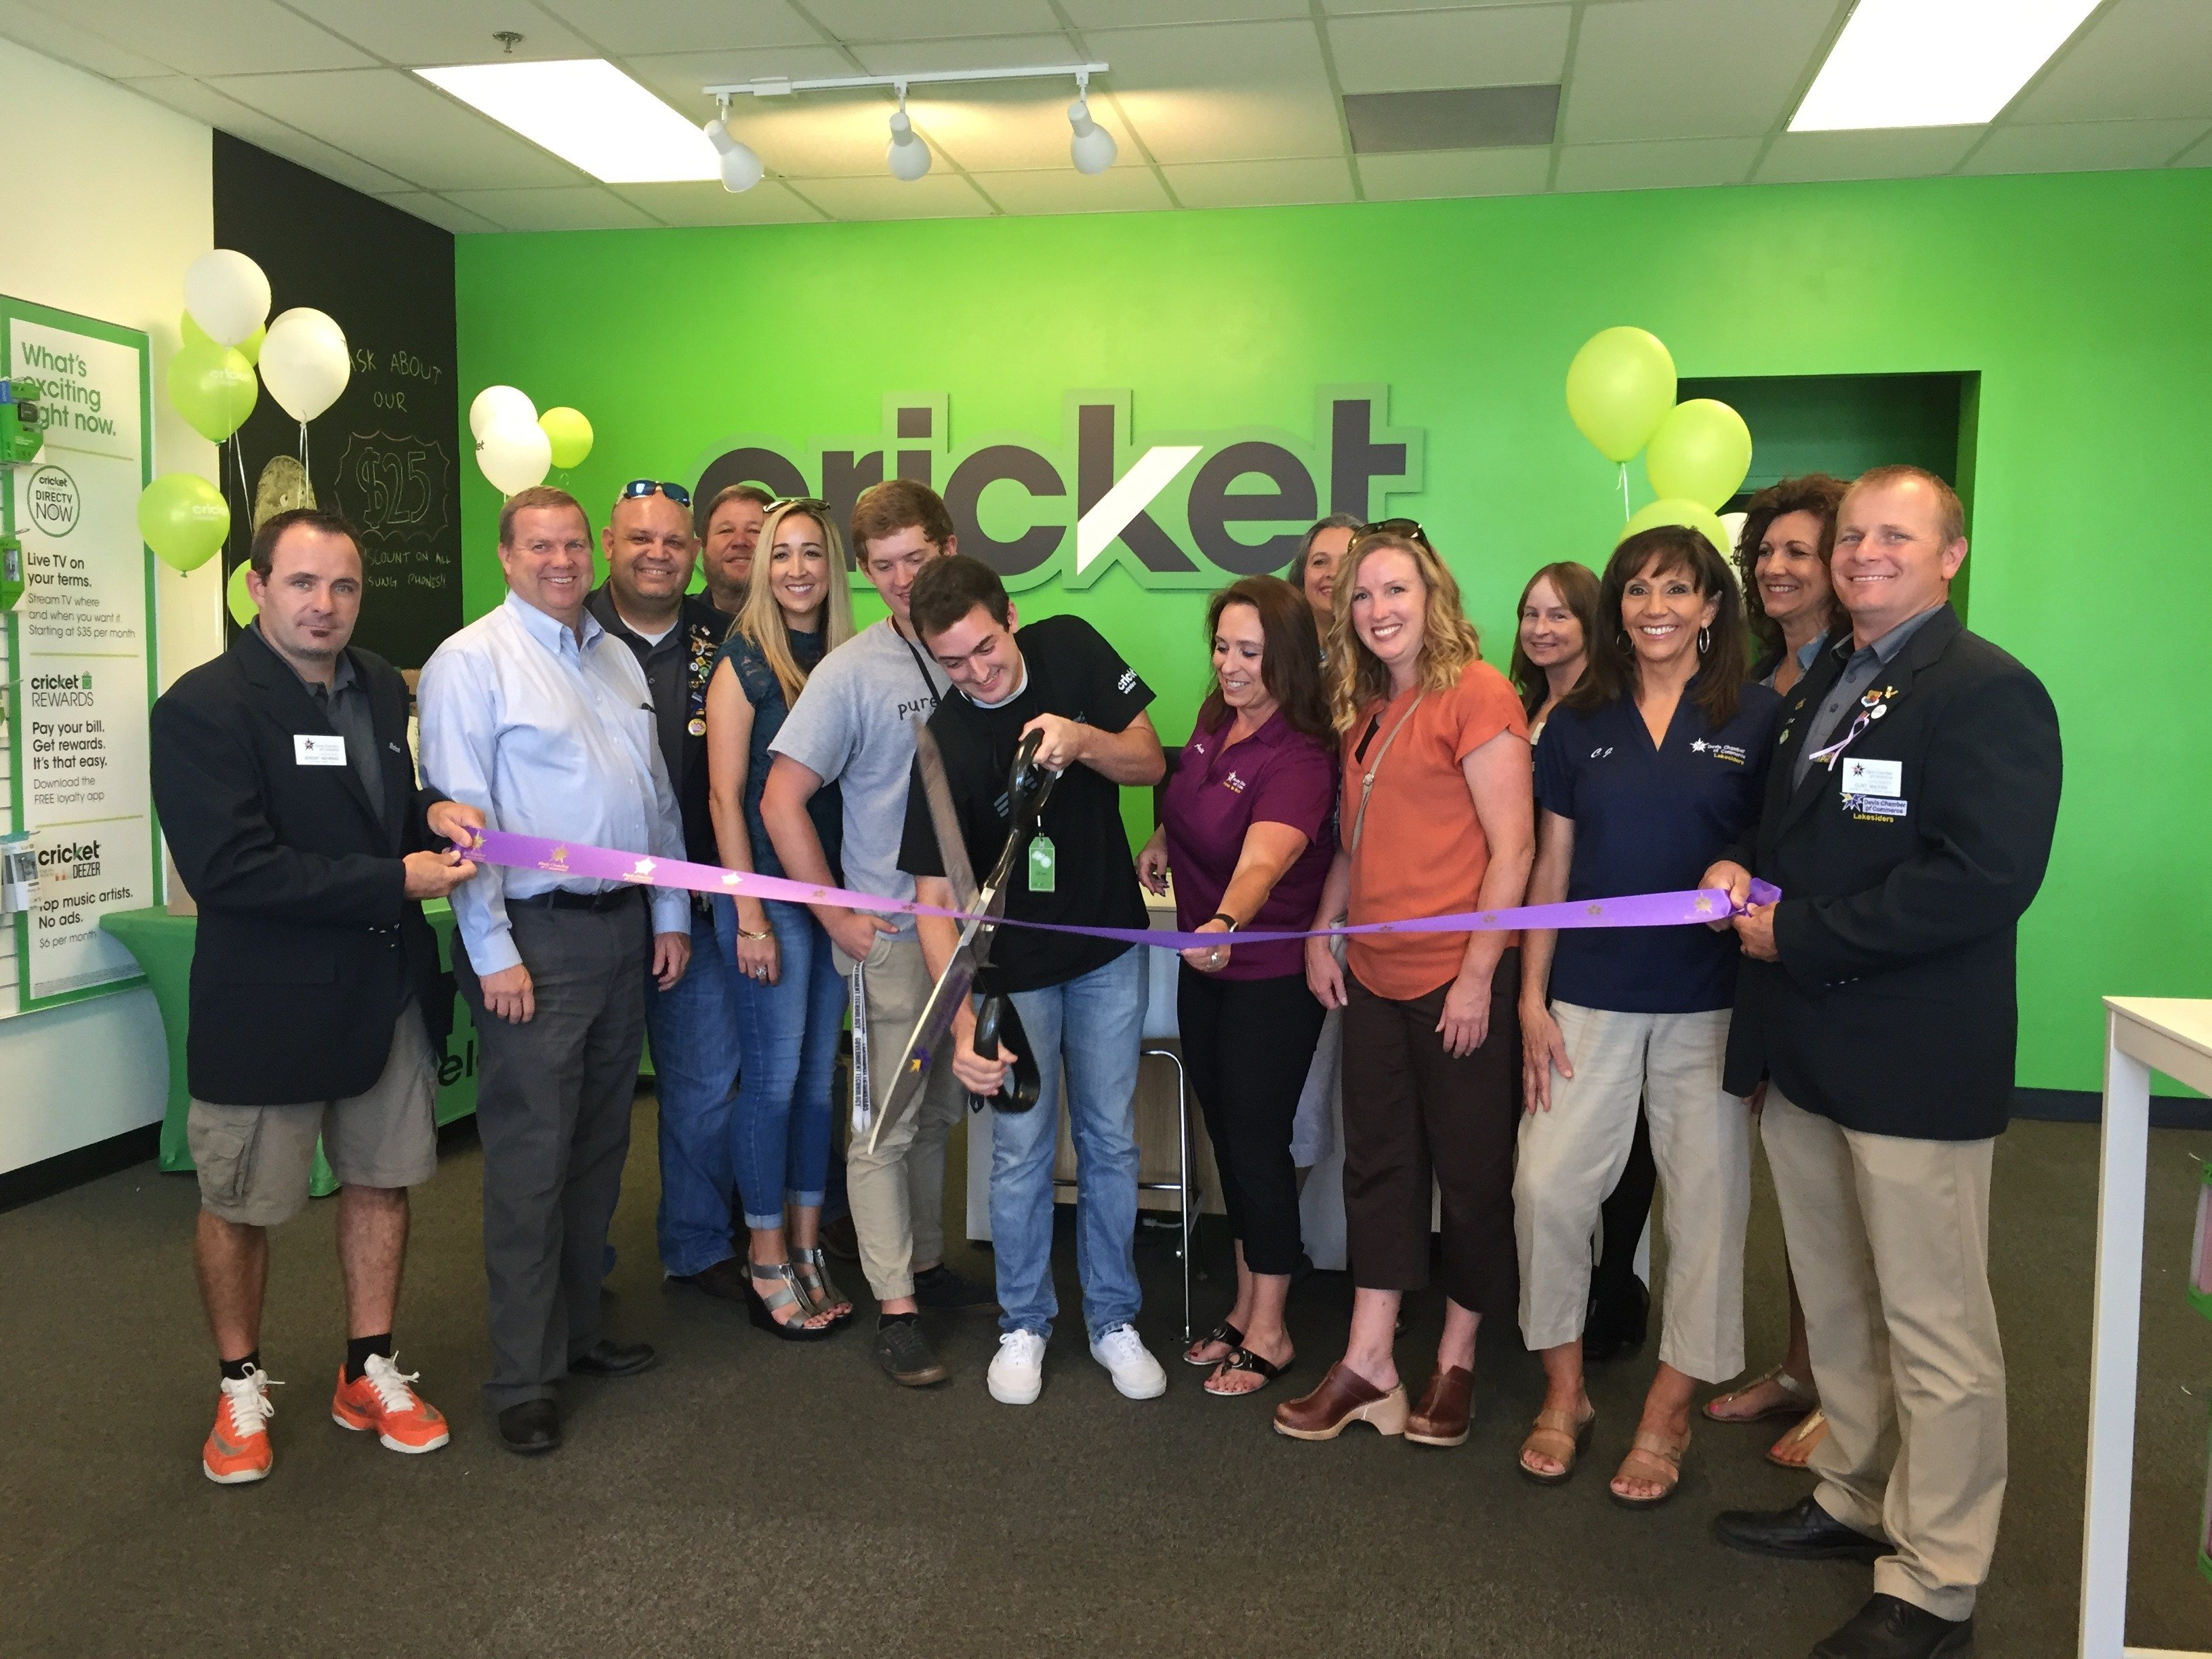 Cricket Wireless Ribbon Cutting - Davis County Chamber of Commerce